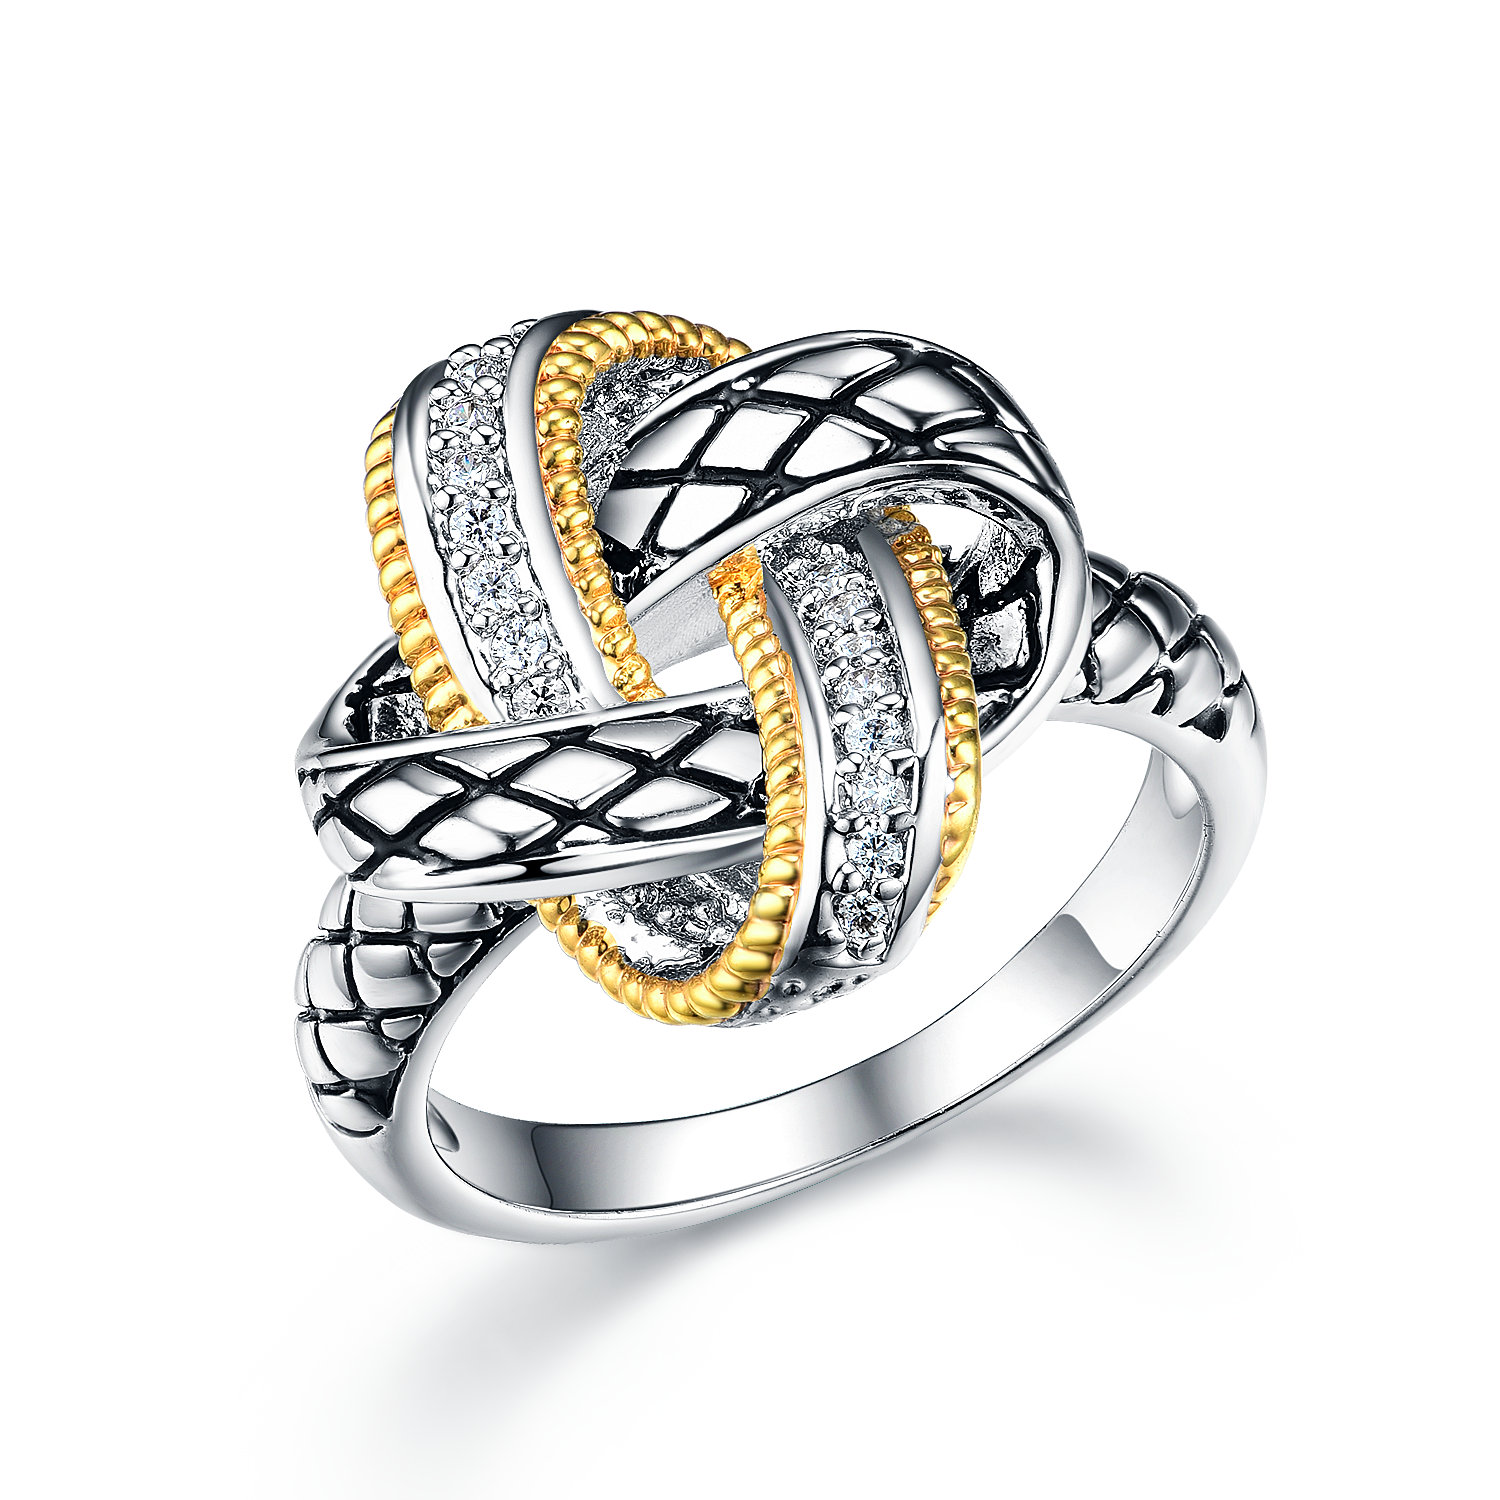 ST2766R-Designer inspired Two-tone KNOT Ring with diamond shape texture in brass from China reliable jewelry factory